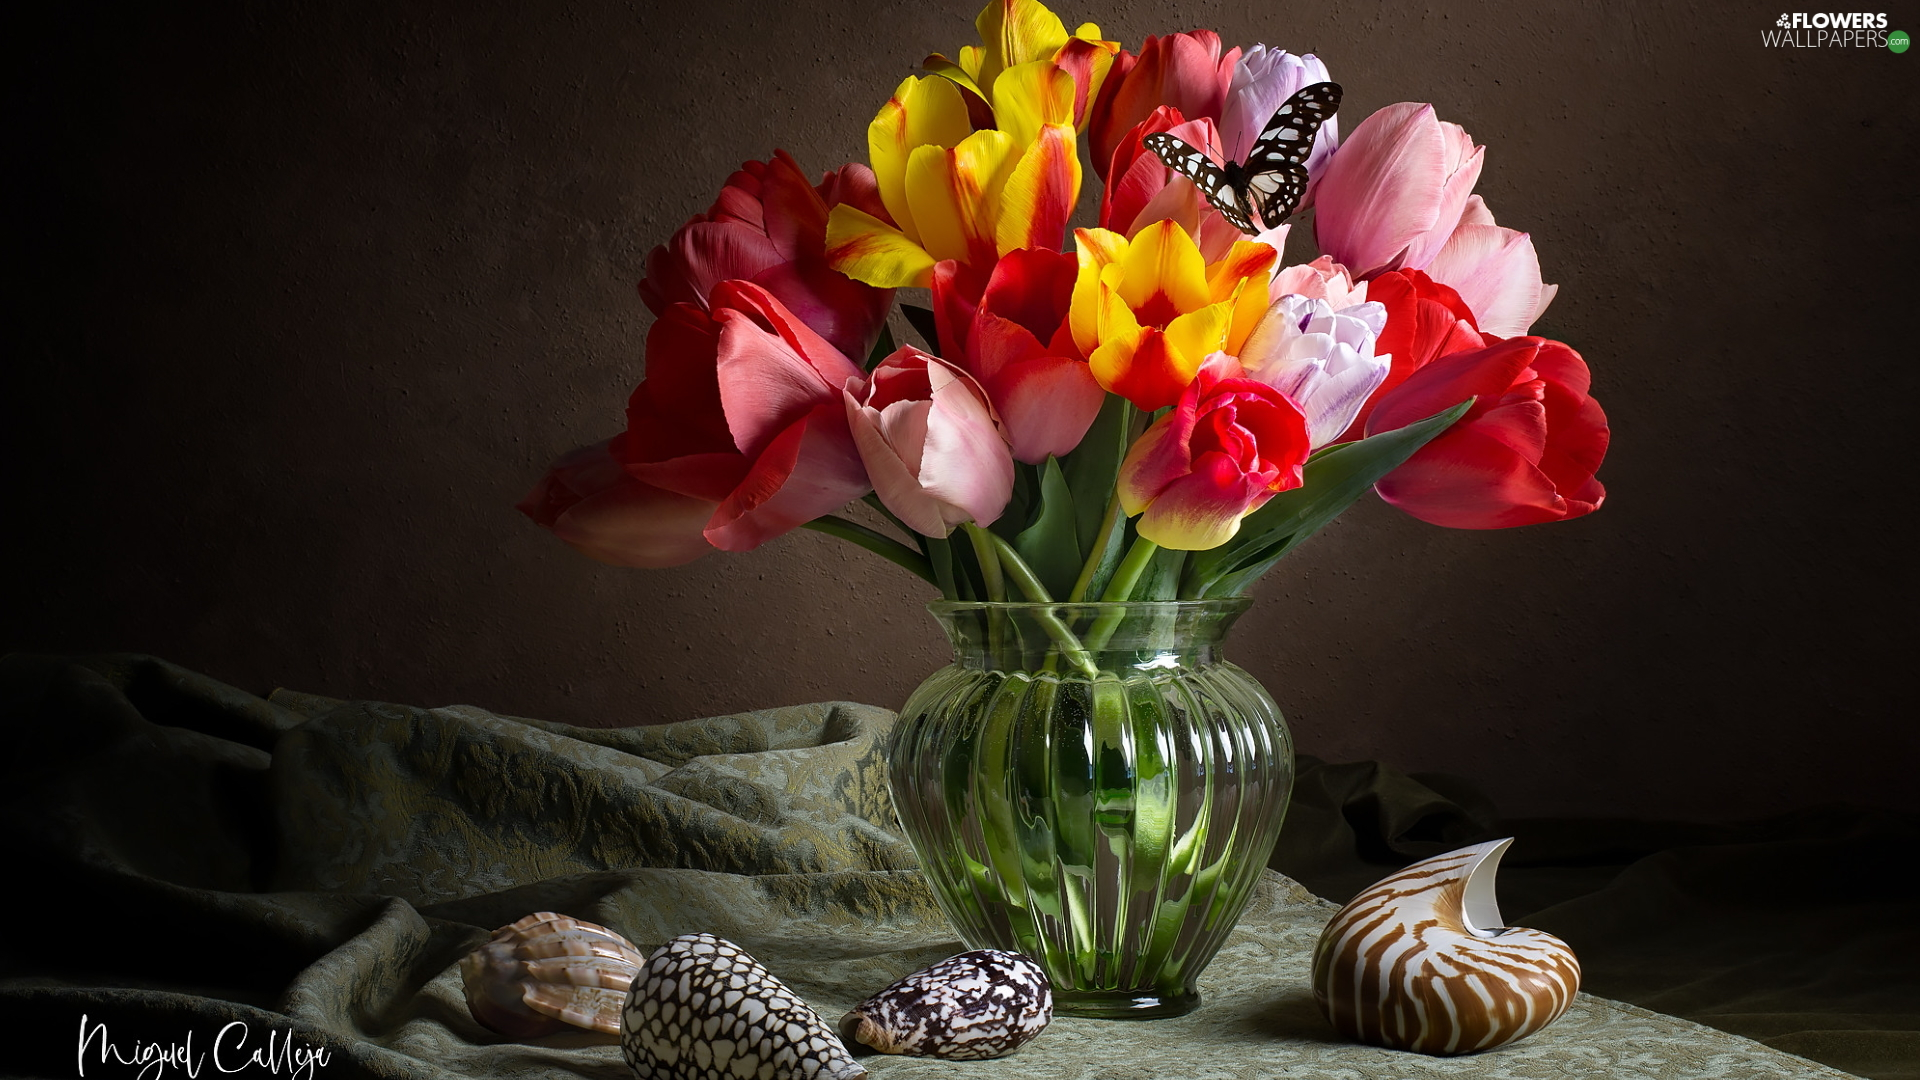 Vase, Tulips, Shells, glass, color, butterfly, composition